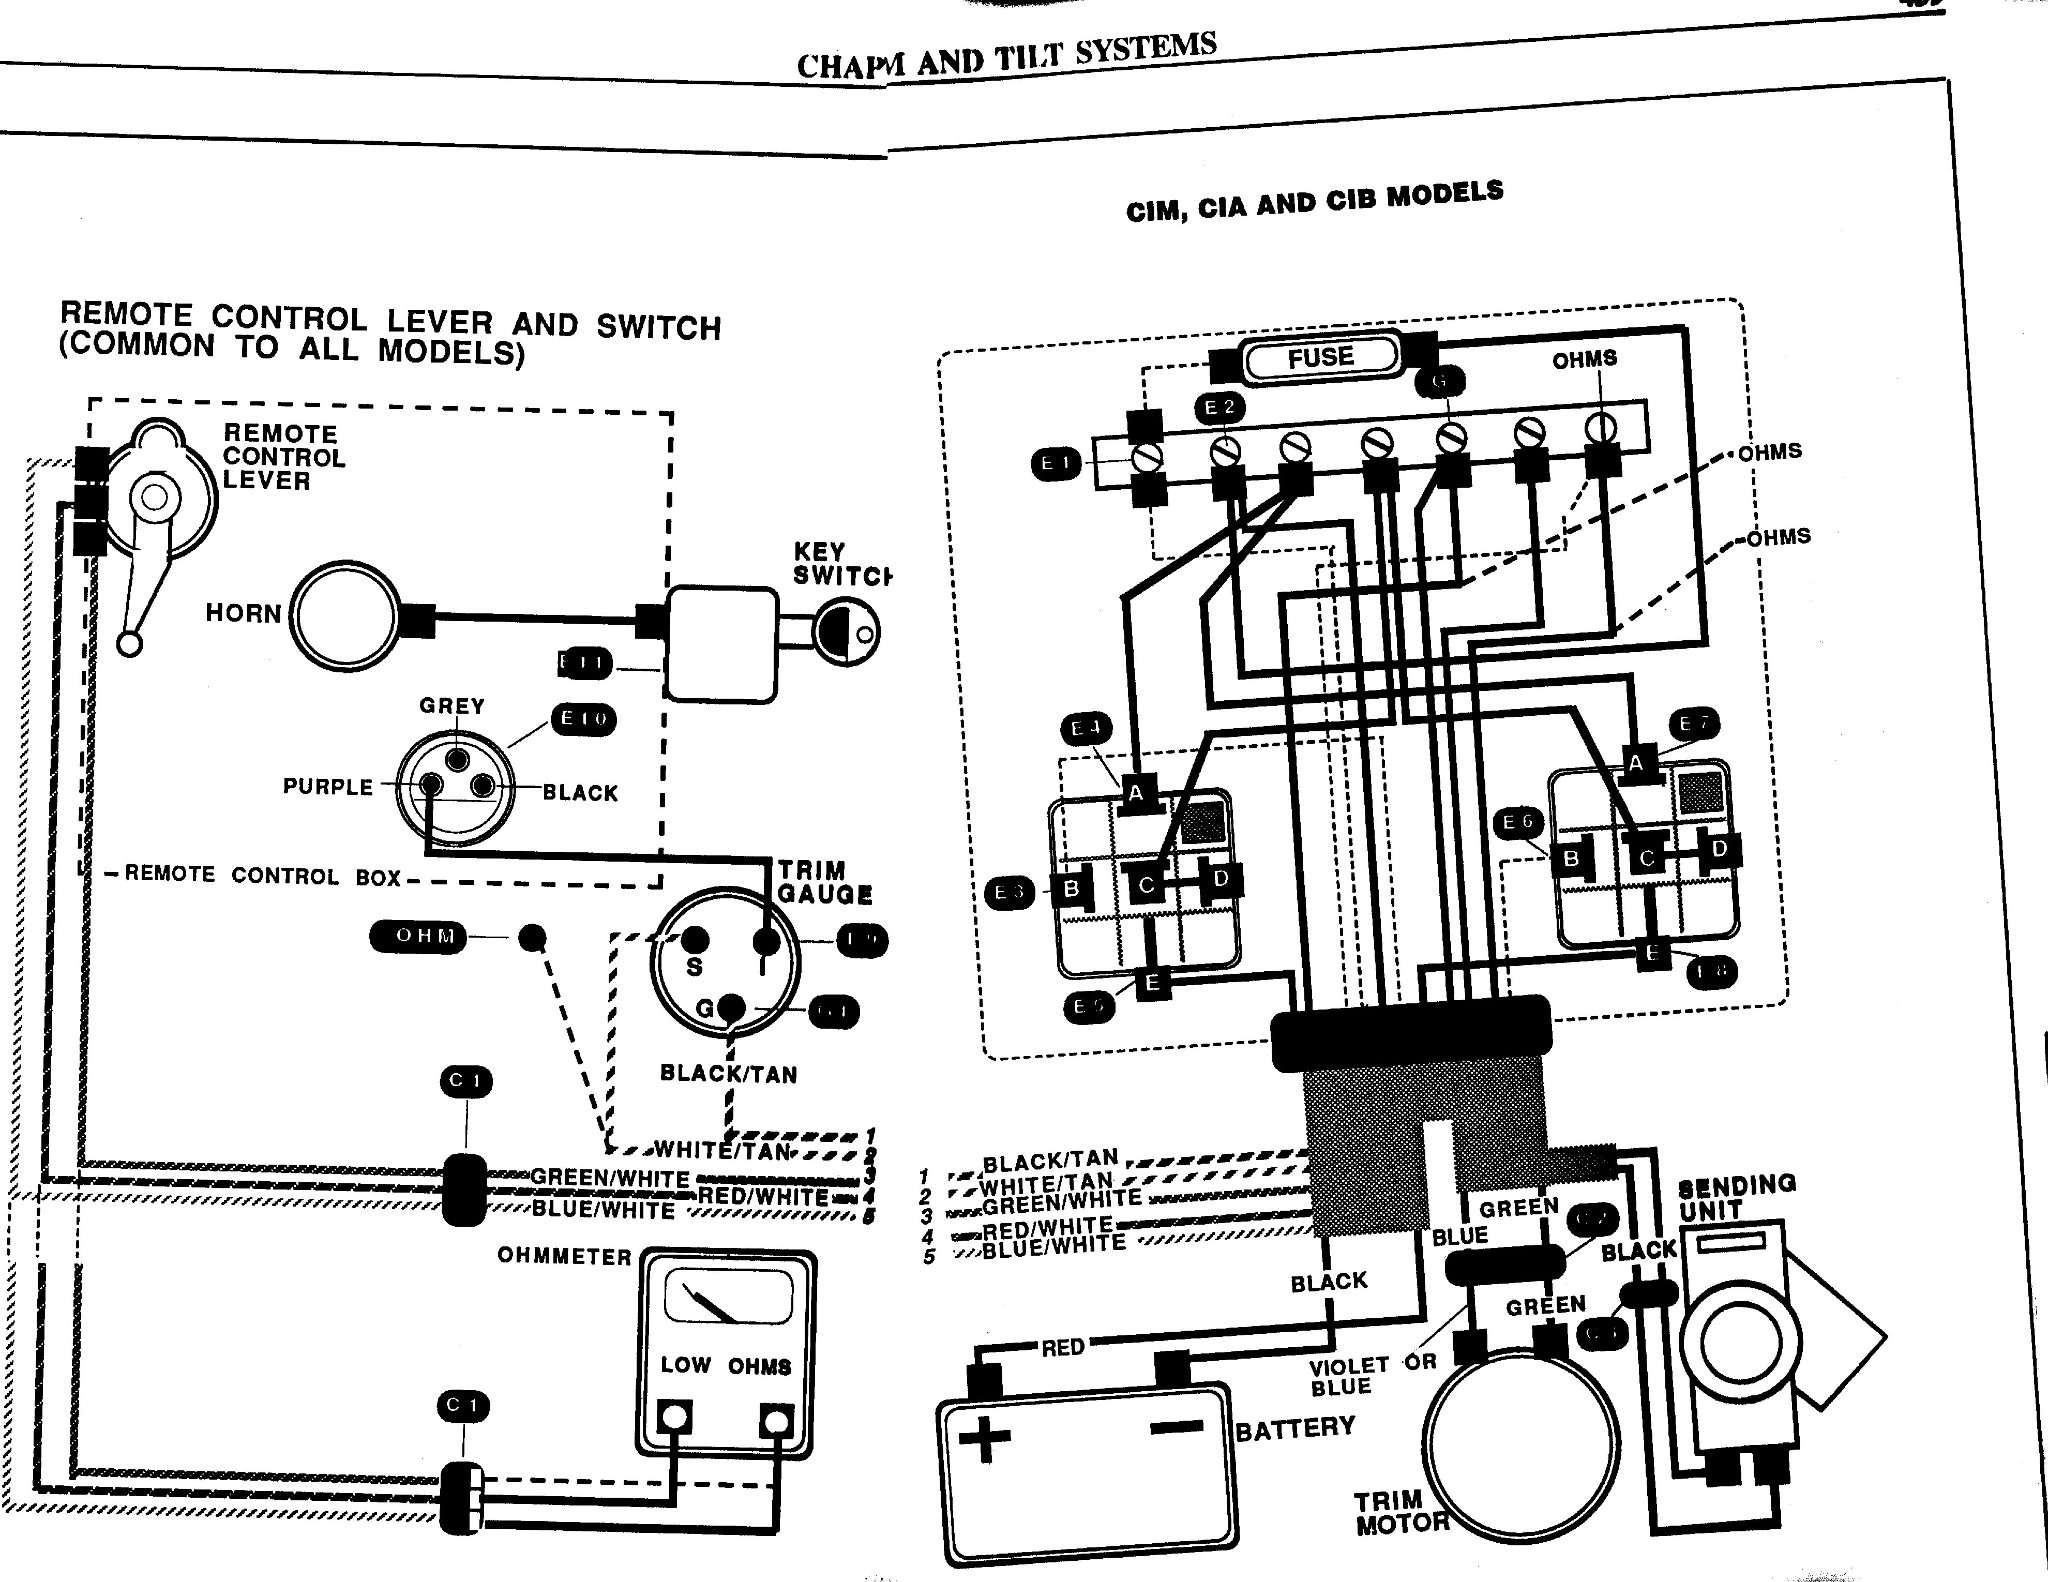 1995 Mitsubishi Mirage Radio Wiring Diagram